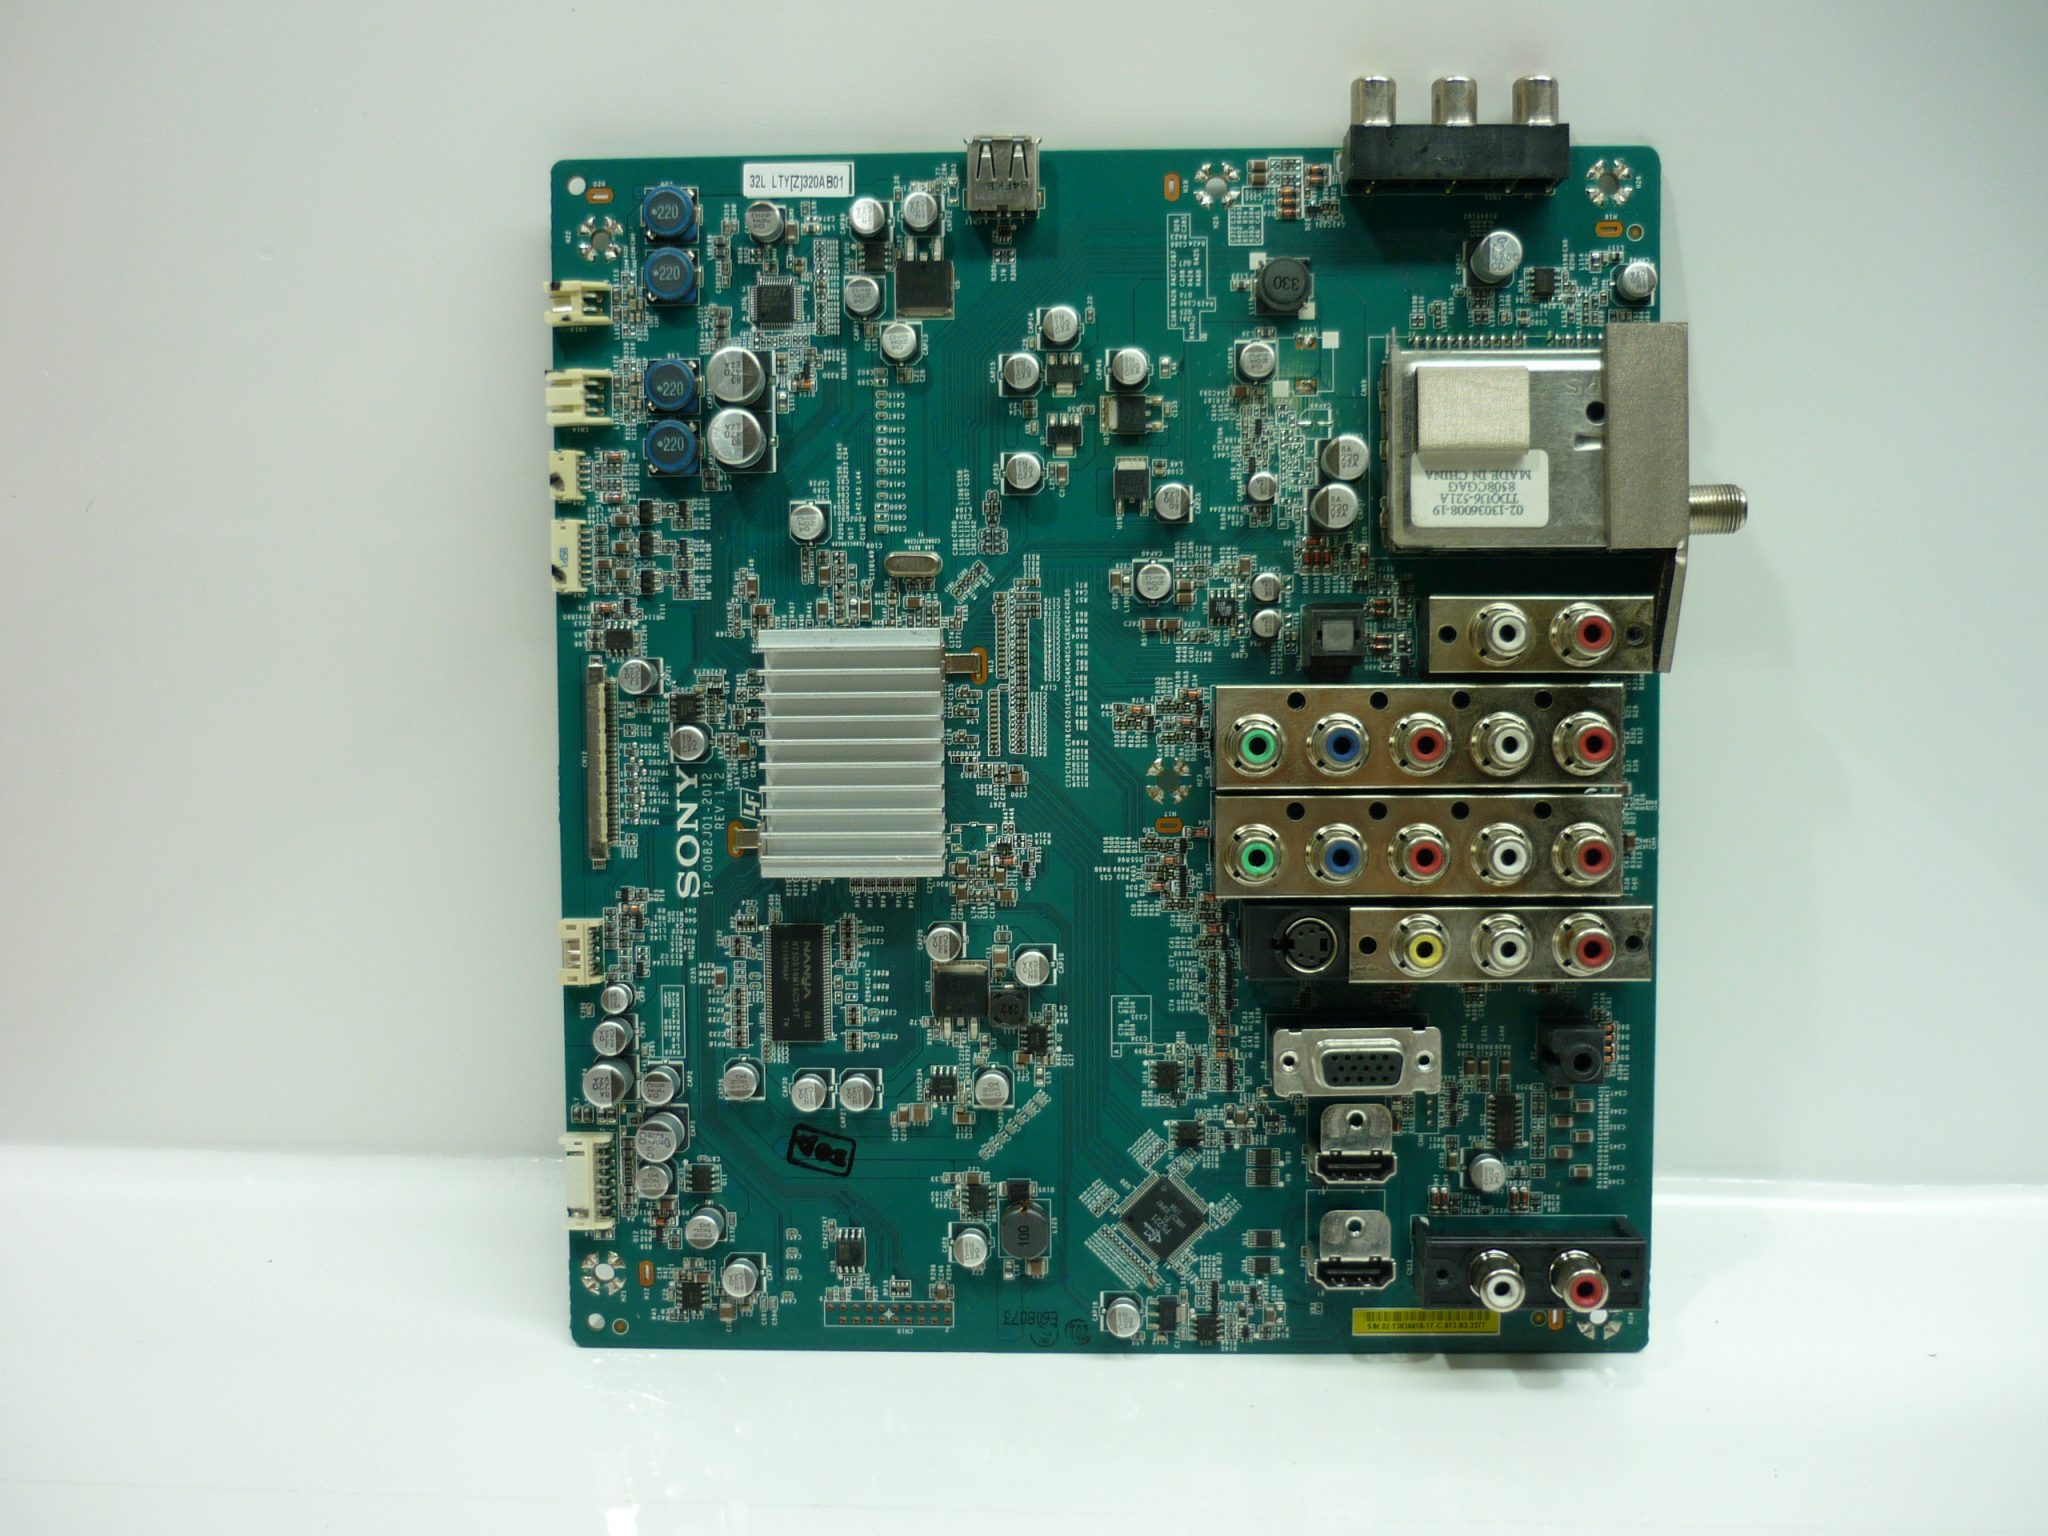 Sony 1-857-036-11 (1P-0082J01-2012) A Board for KDL-32L4000